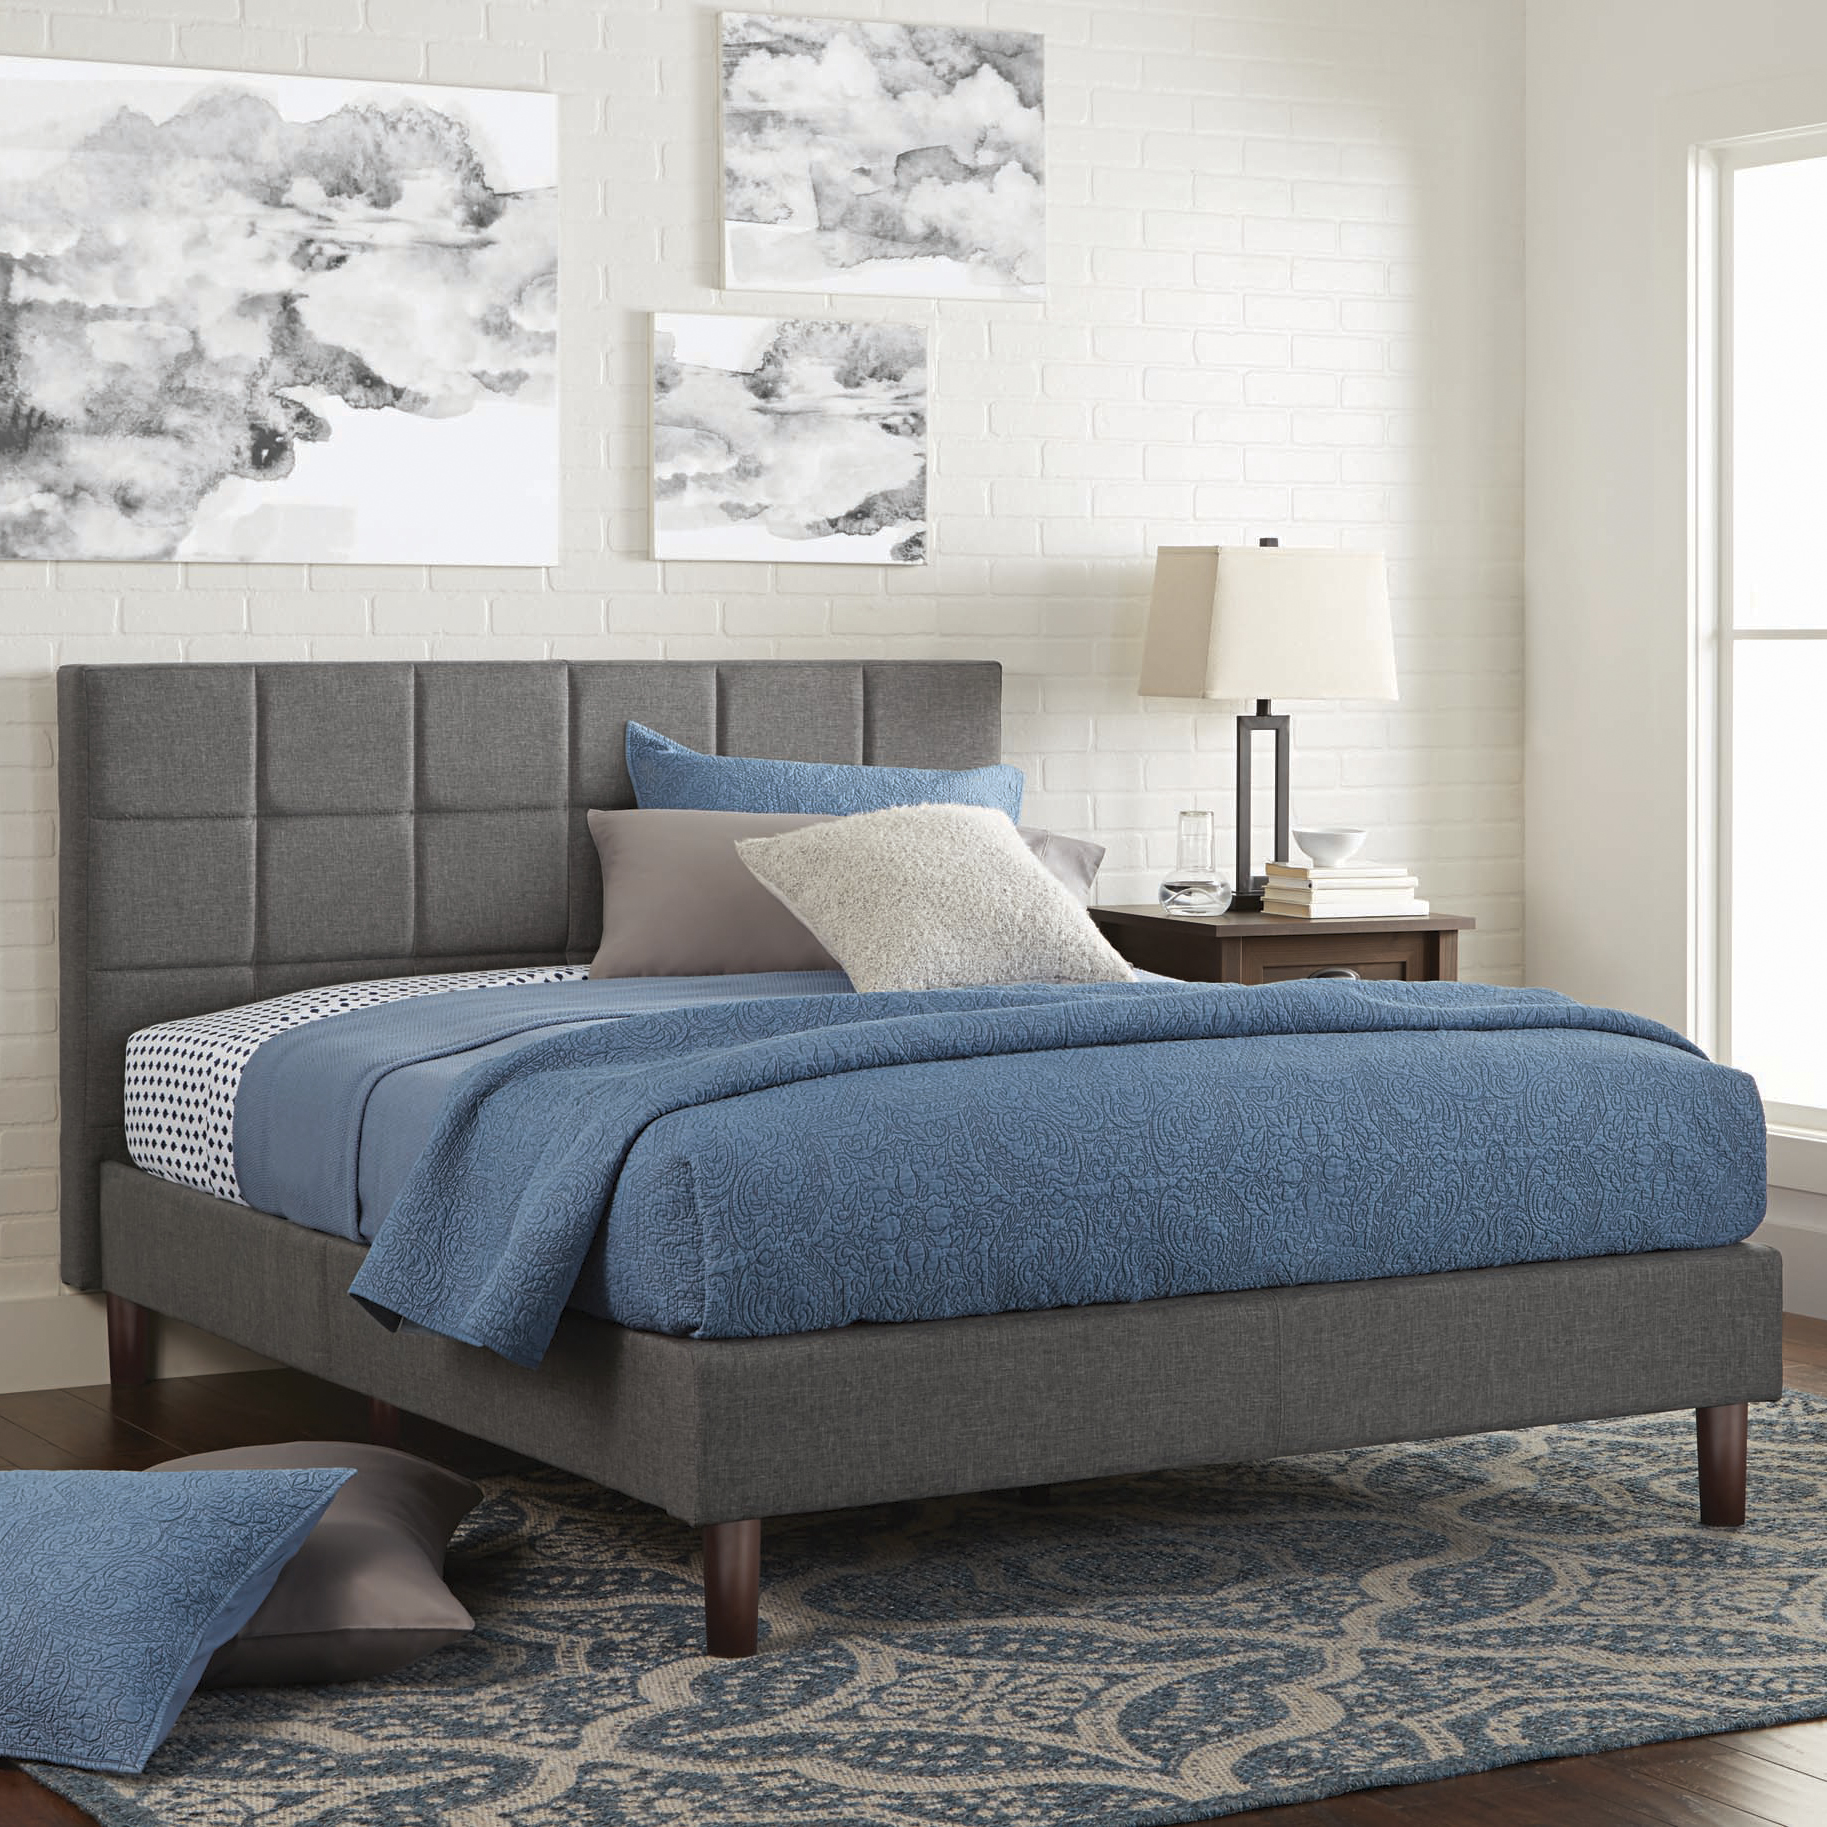 Better Homes and Gardens Knox Upholstered Platform Bed, Multiple Sizes by Zinus Inc